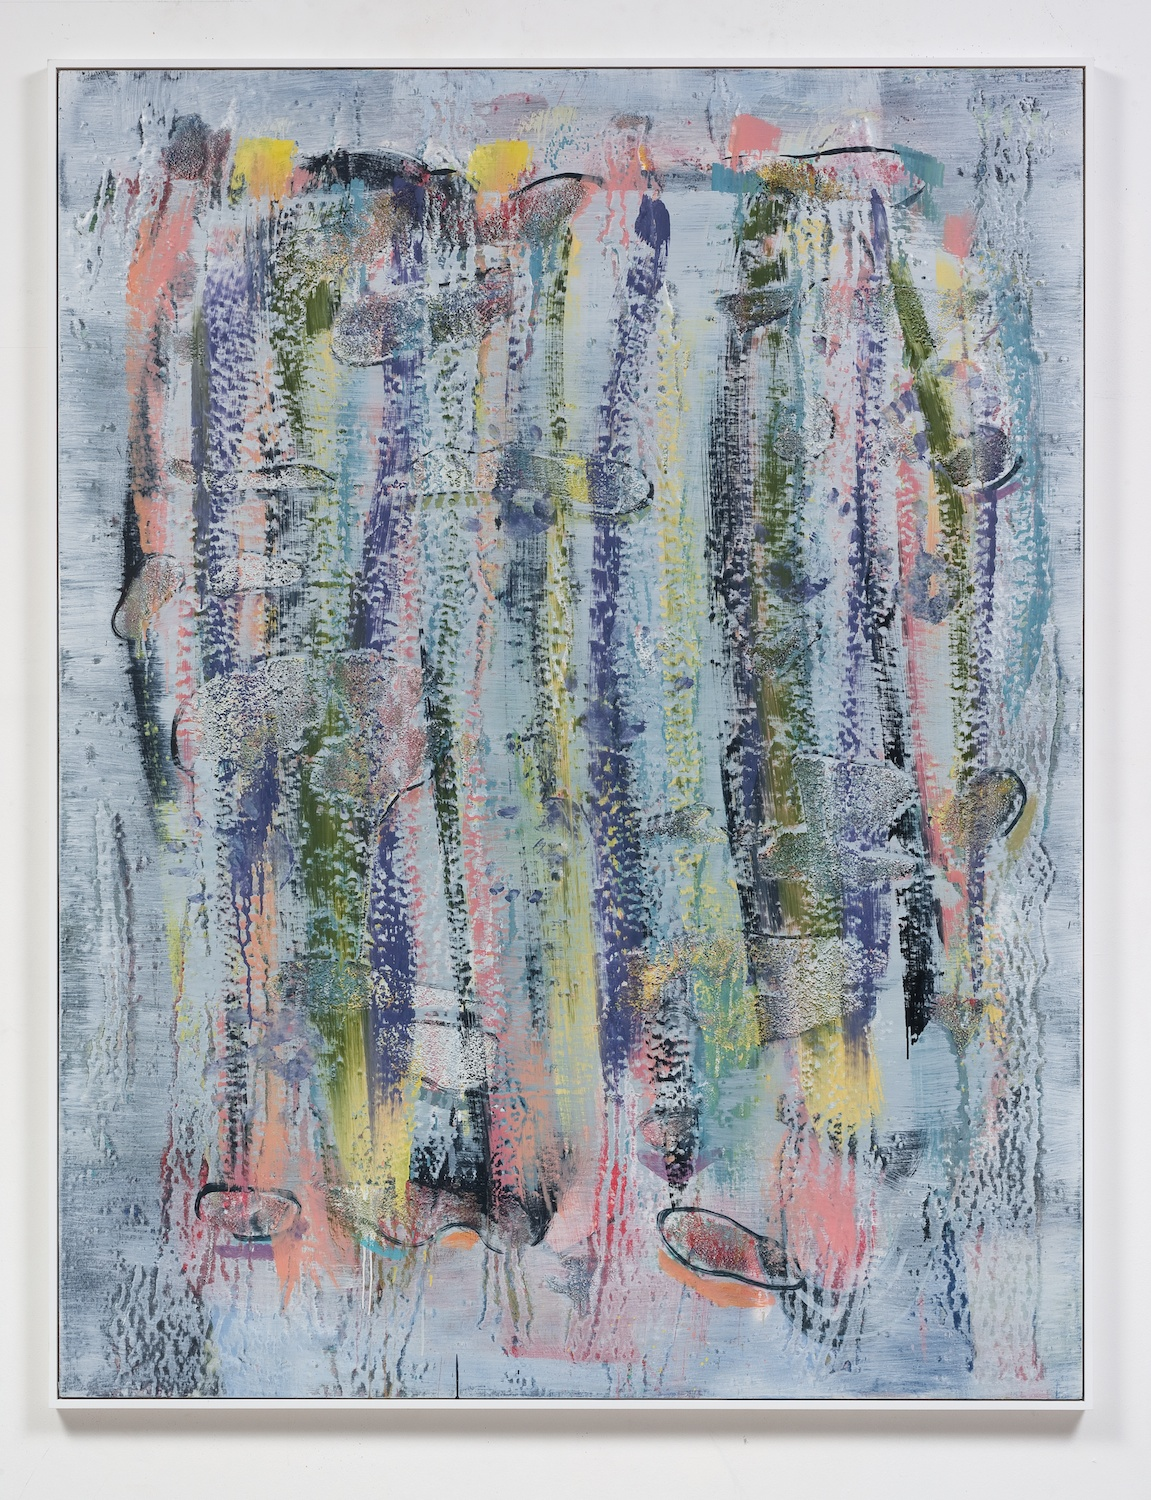 Jon Pestoni  How To  2014 Oil and mixed media on panel, inset into wood frame 78h x 60w in JP193